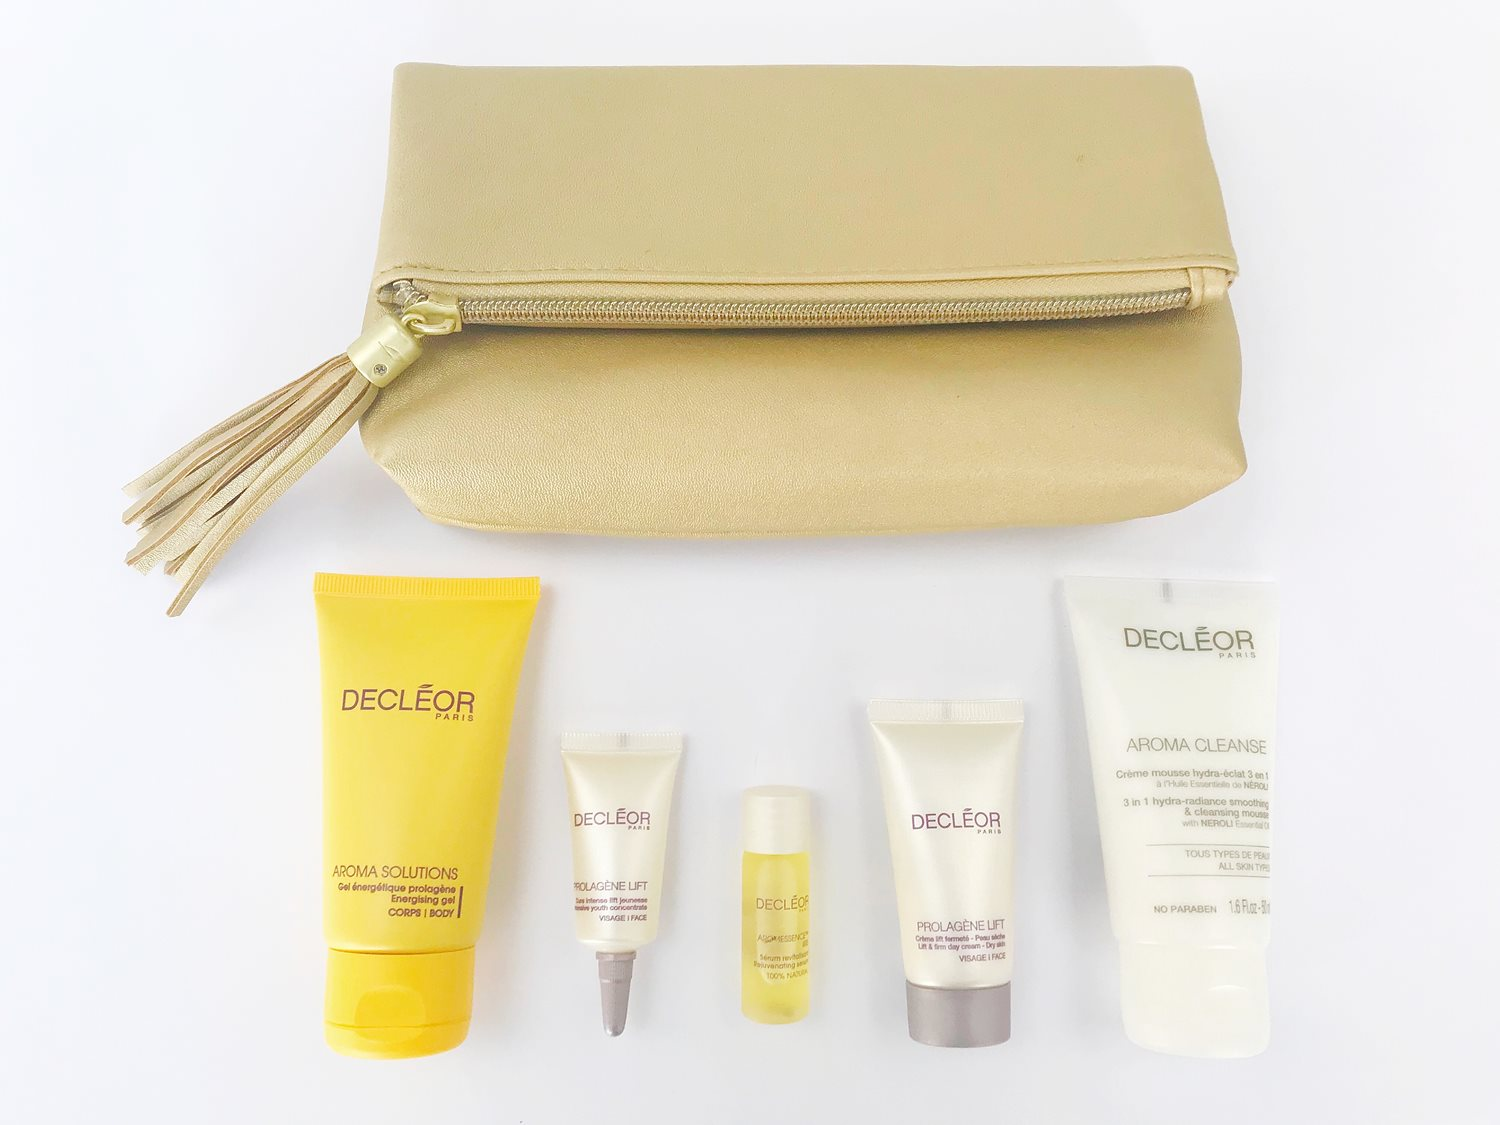 Receive a fabulous free gift for our December treatments of the month. This one comes with the Decleor massage